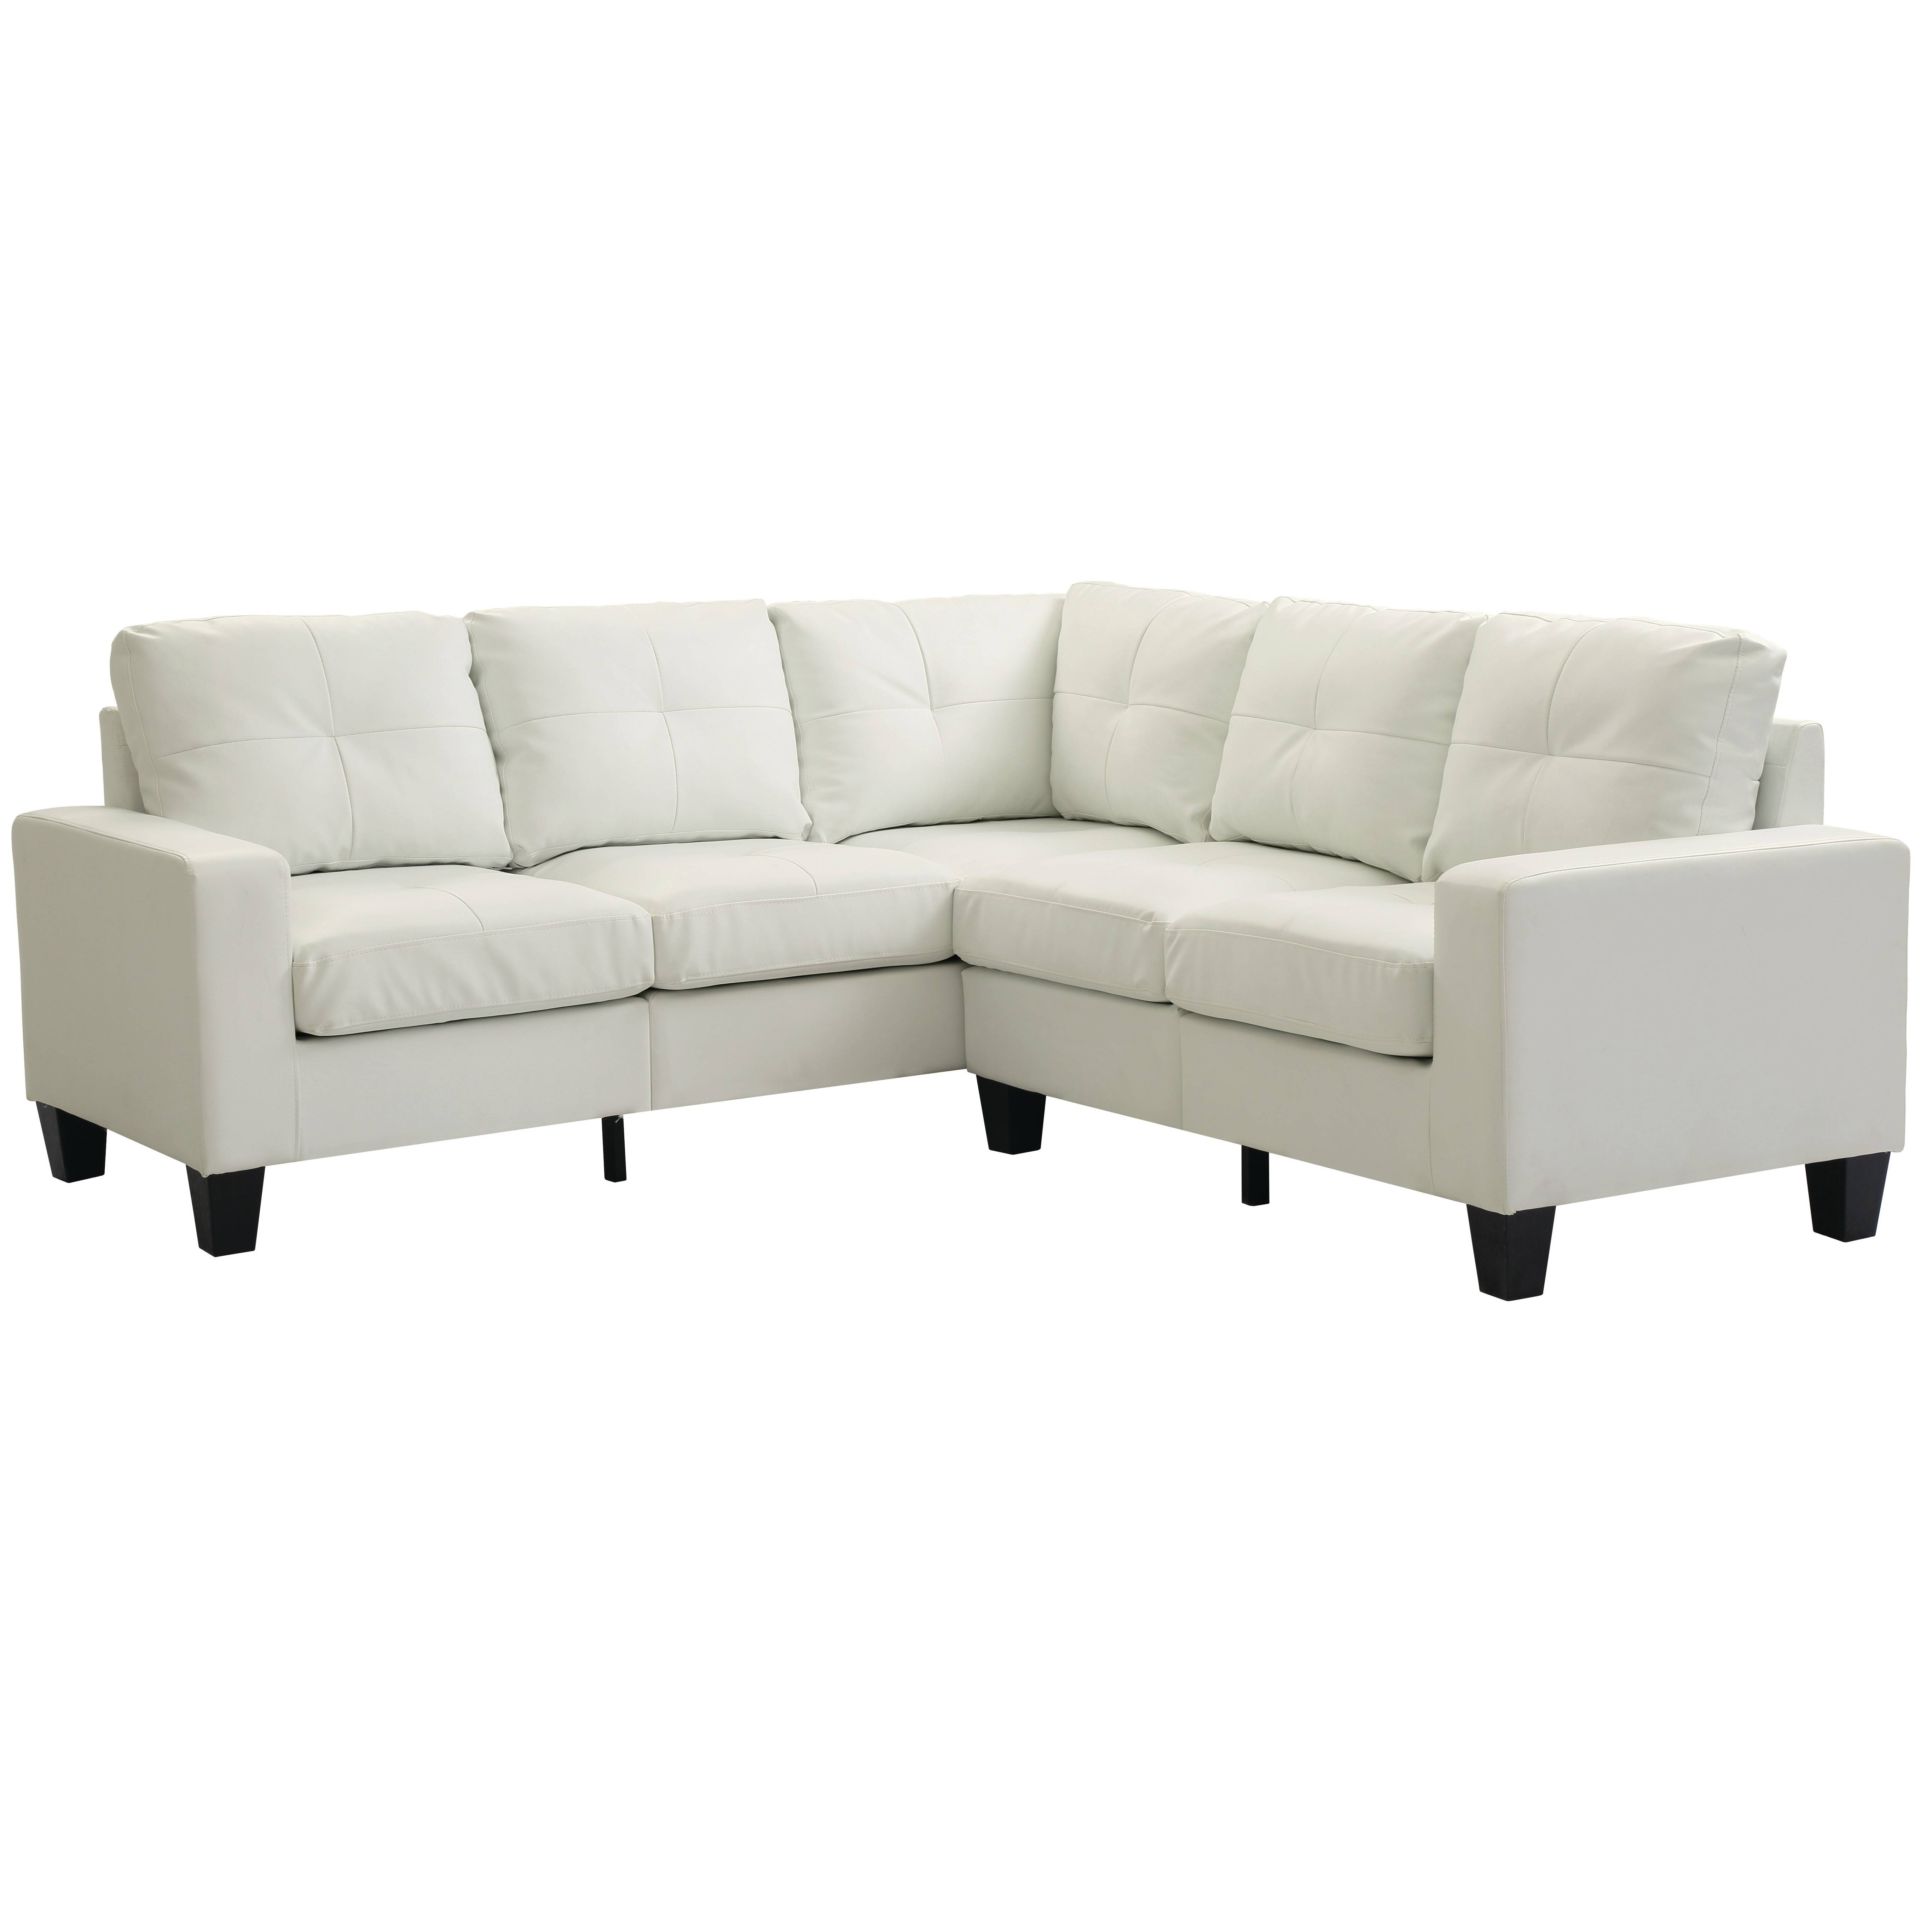 Tufted Sectional Sofa With Chaise Incredibly Nw7 | Umpsa 78 Sofas within Tufted Sectional Sofa With Chaise (Image 30 of 30)